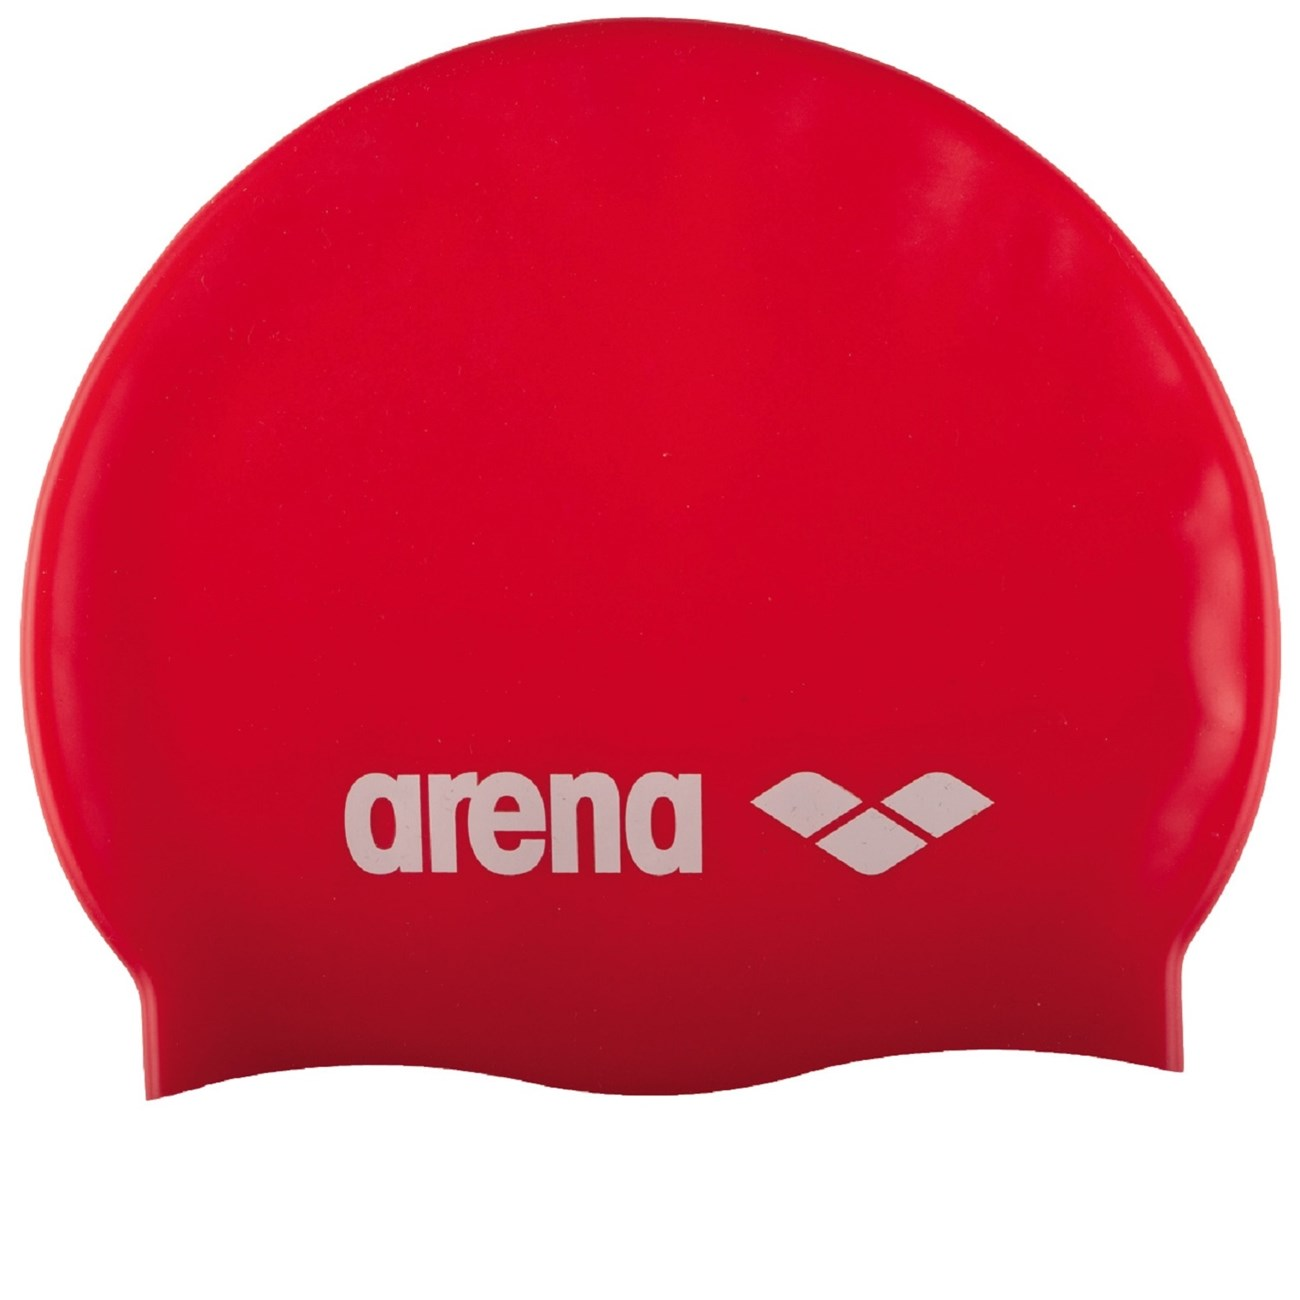 ARENA CLASSIC SILICONE HAT 91662-44 - INTERSPORT